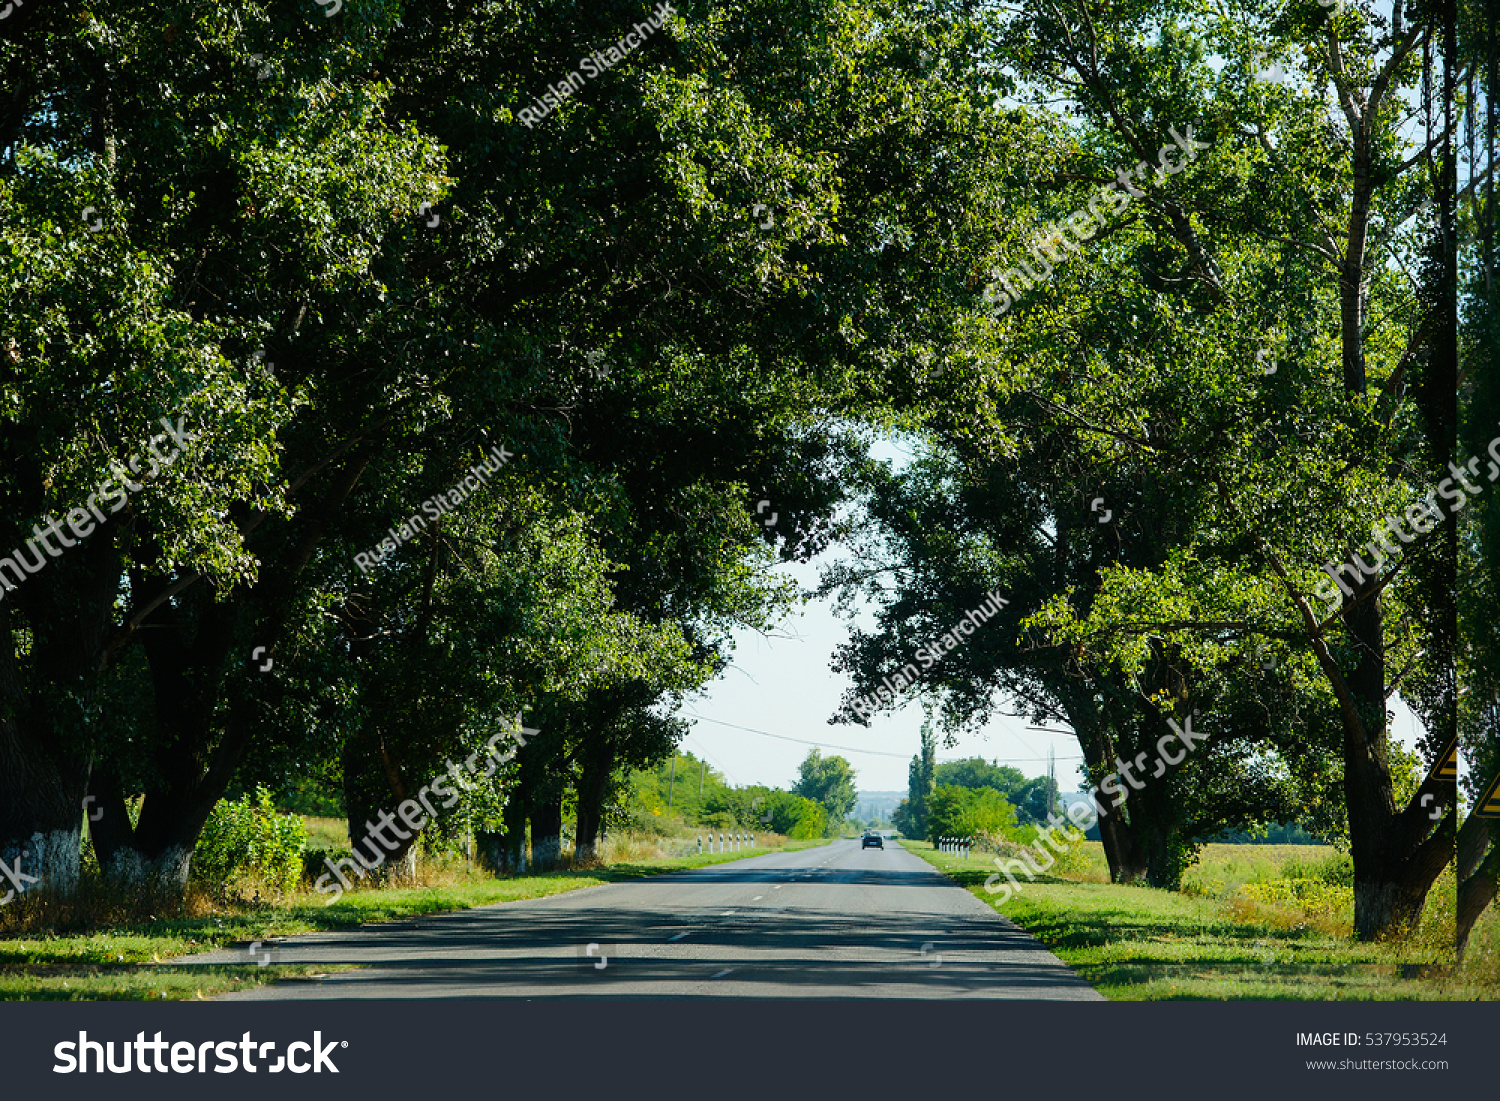 Road Trees Landscape Straight Road Under Stock Photo 537953524 ... for Straight Road With Trees  173lyp